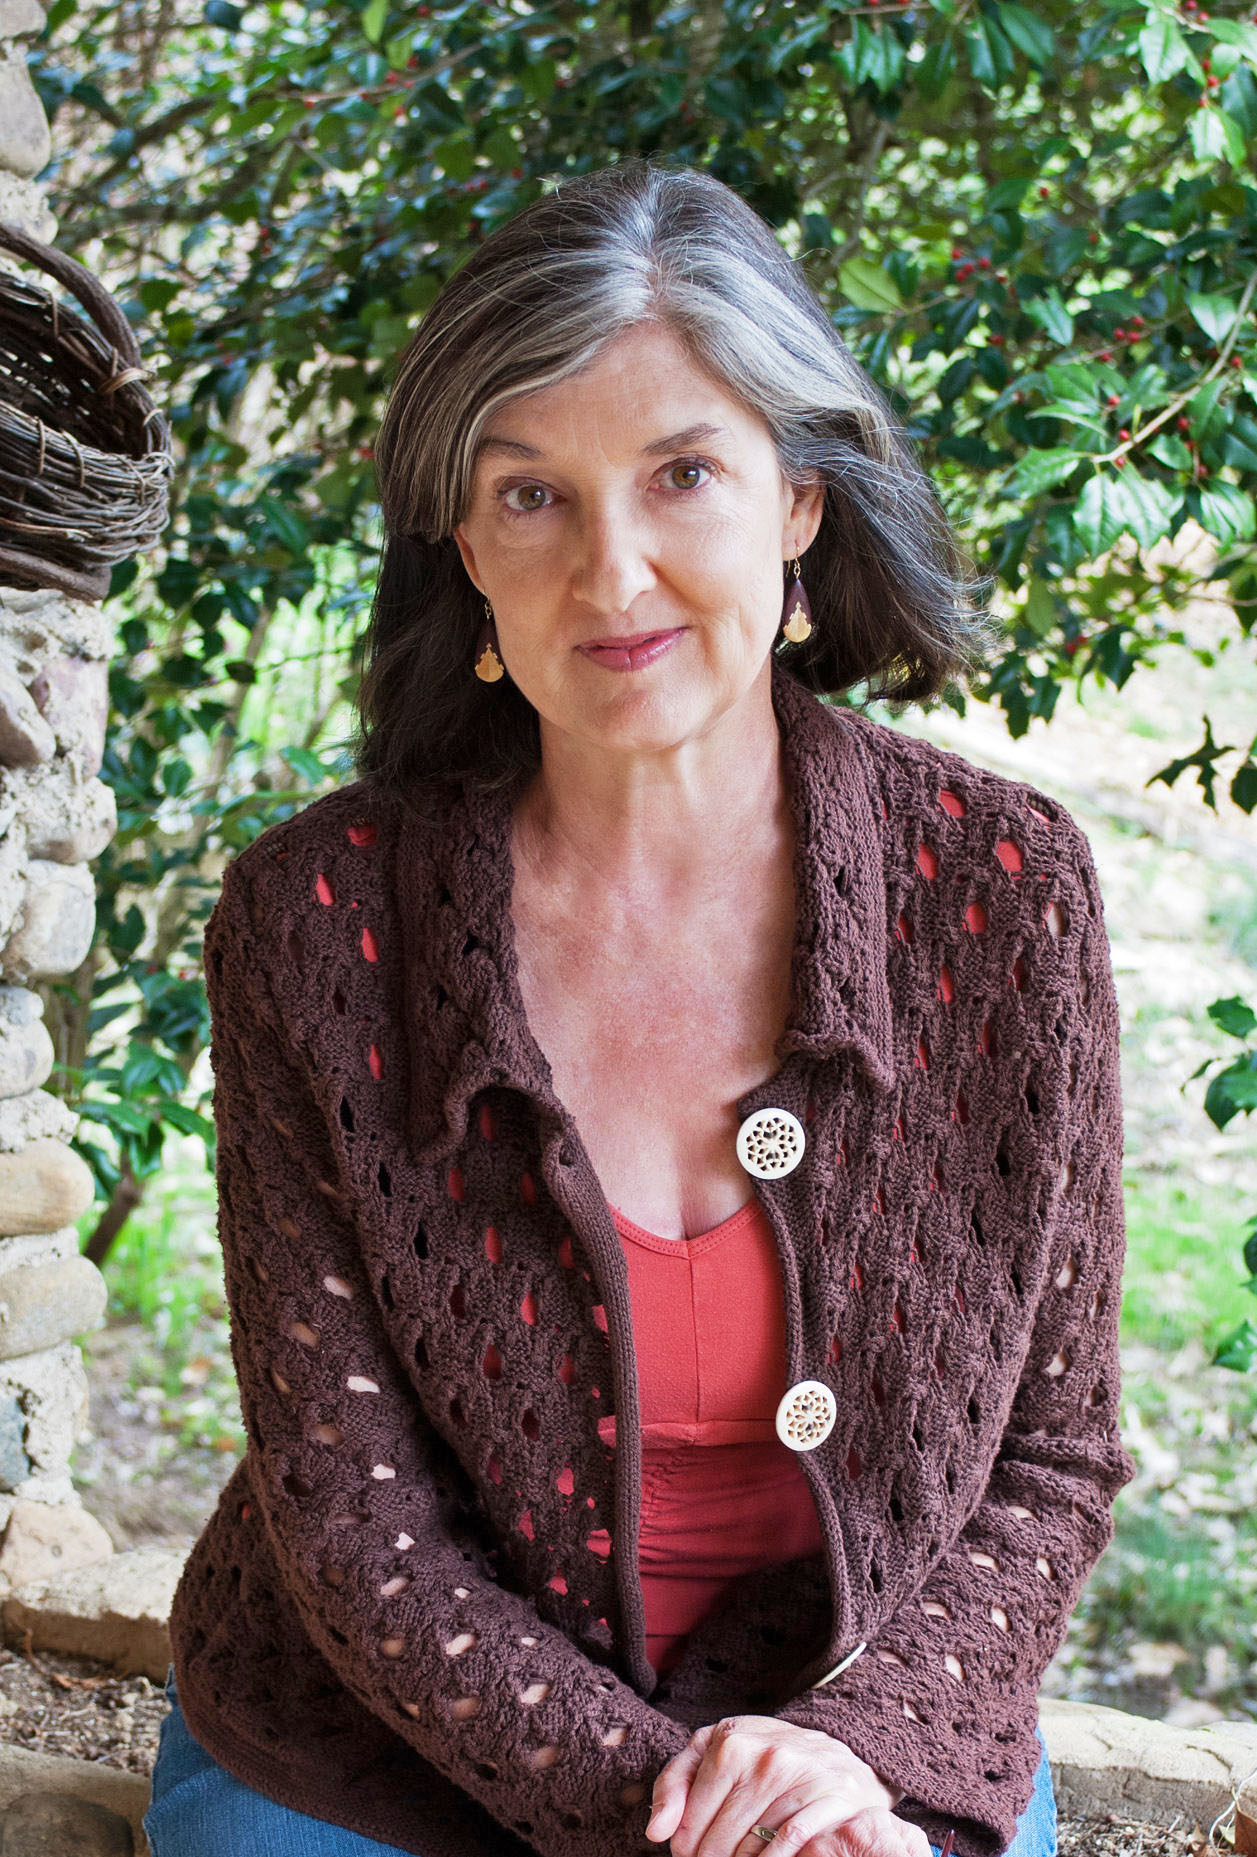 Photograph courtesy of Barbara Kingsolver.